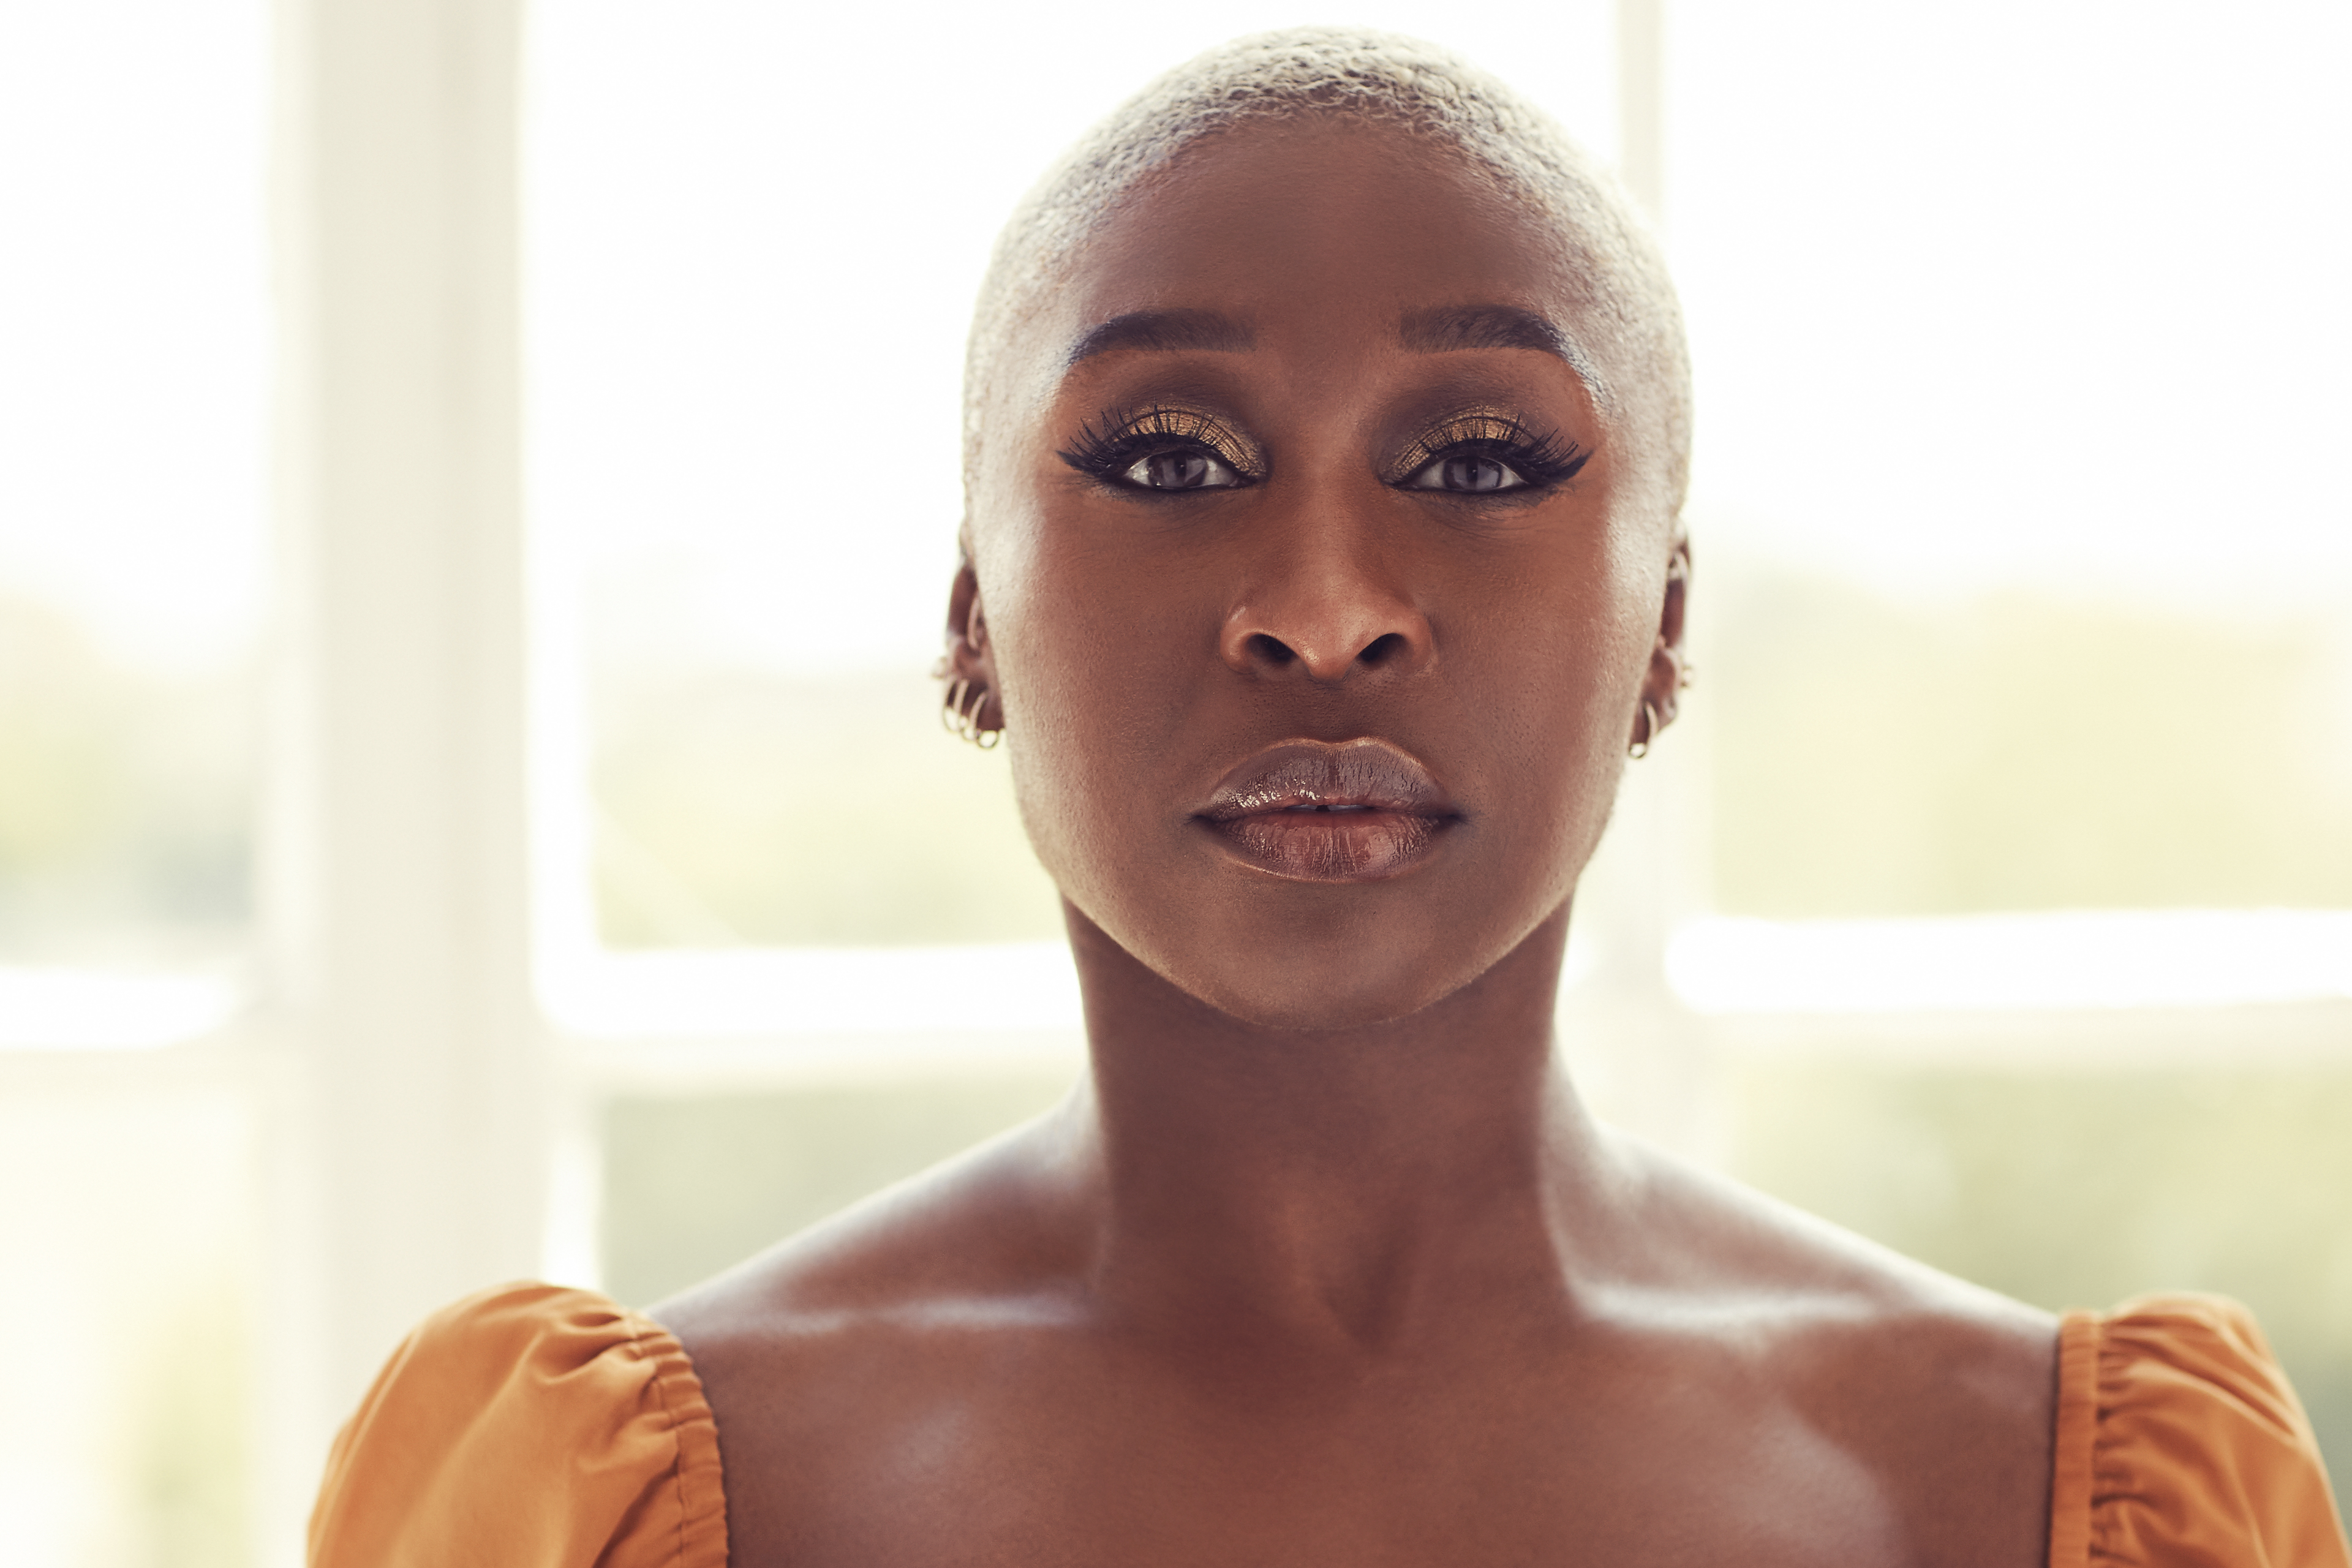 Cynthia Erivo naked (76 photos), Sexy, Sideboobs, Boobs, underwear 2017